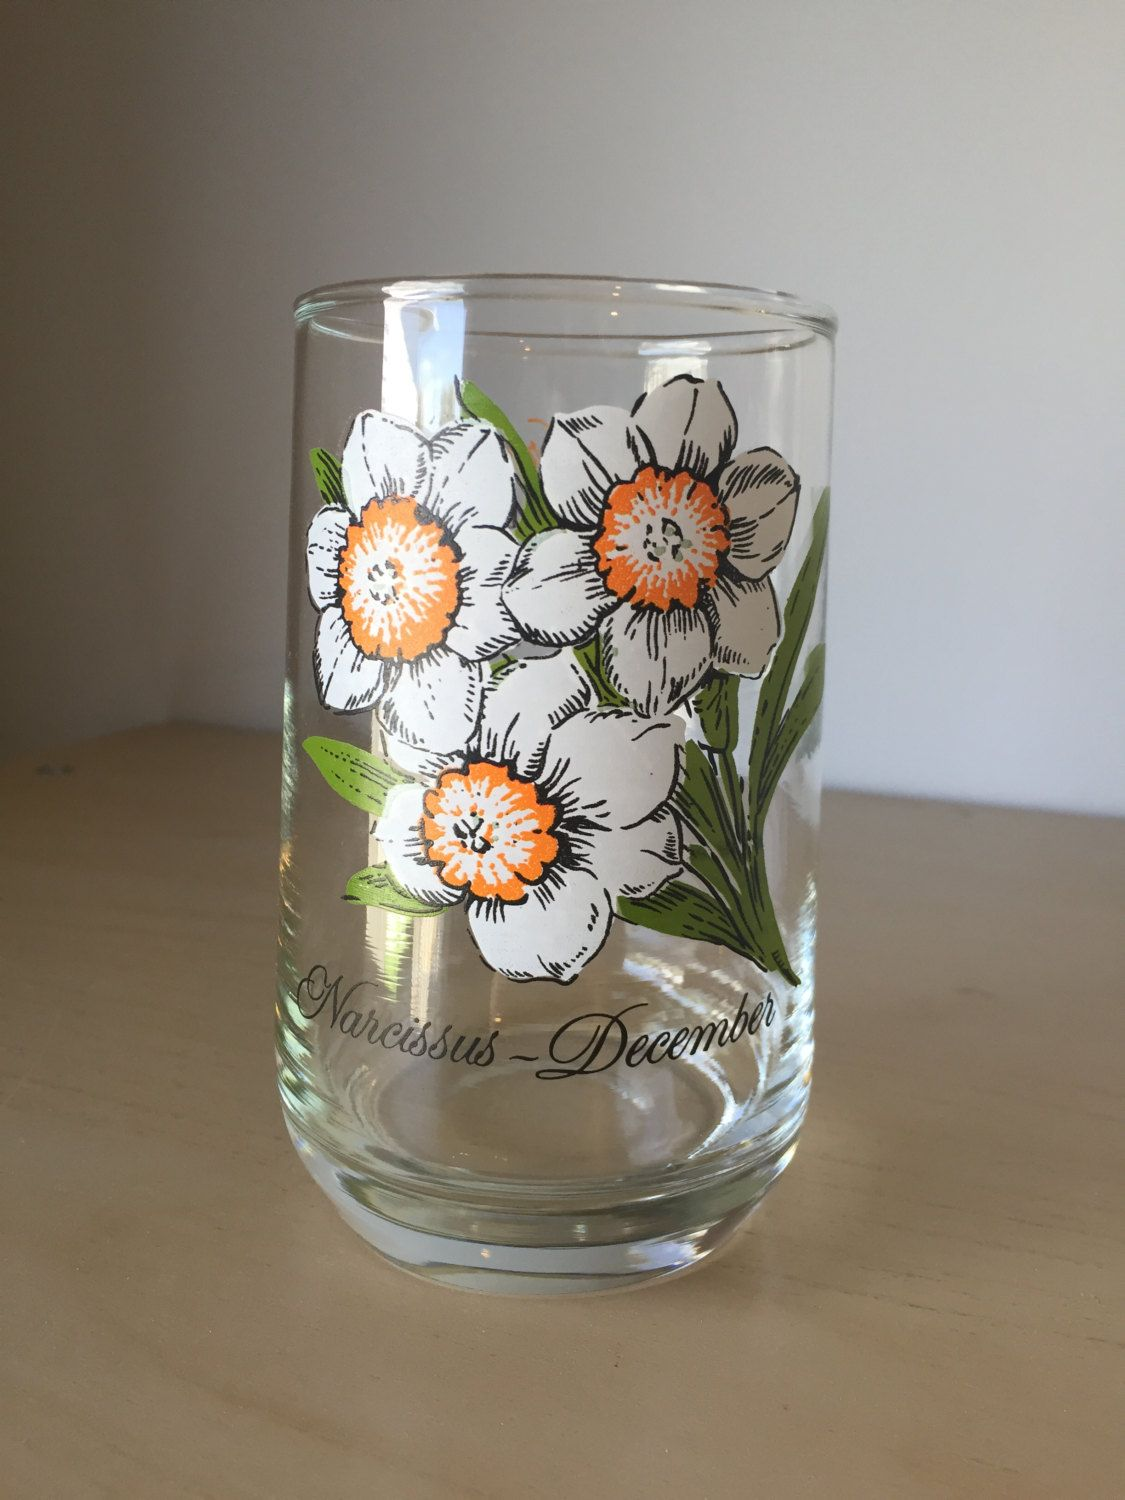 Vintage Drinking Glass, December Narcissus Flower of the